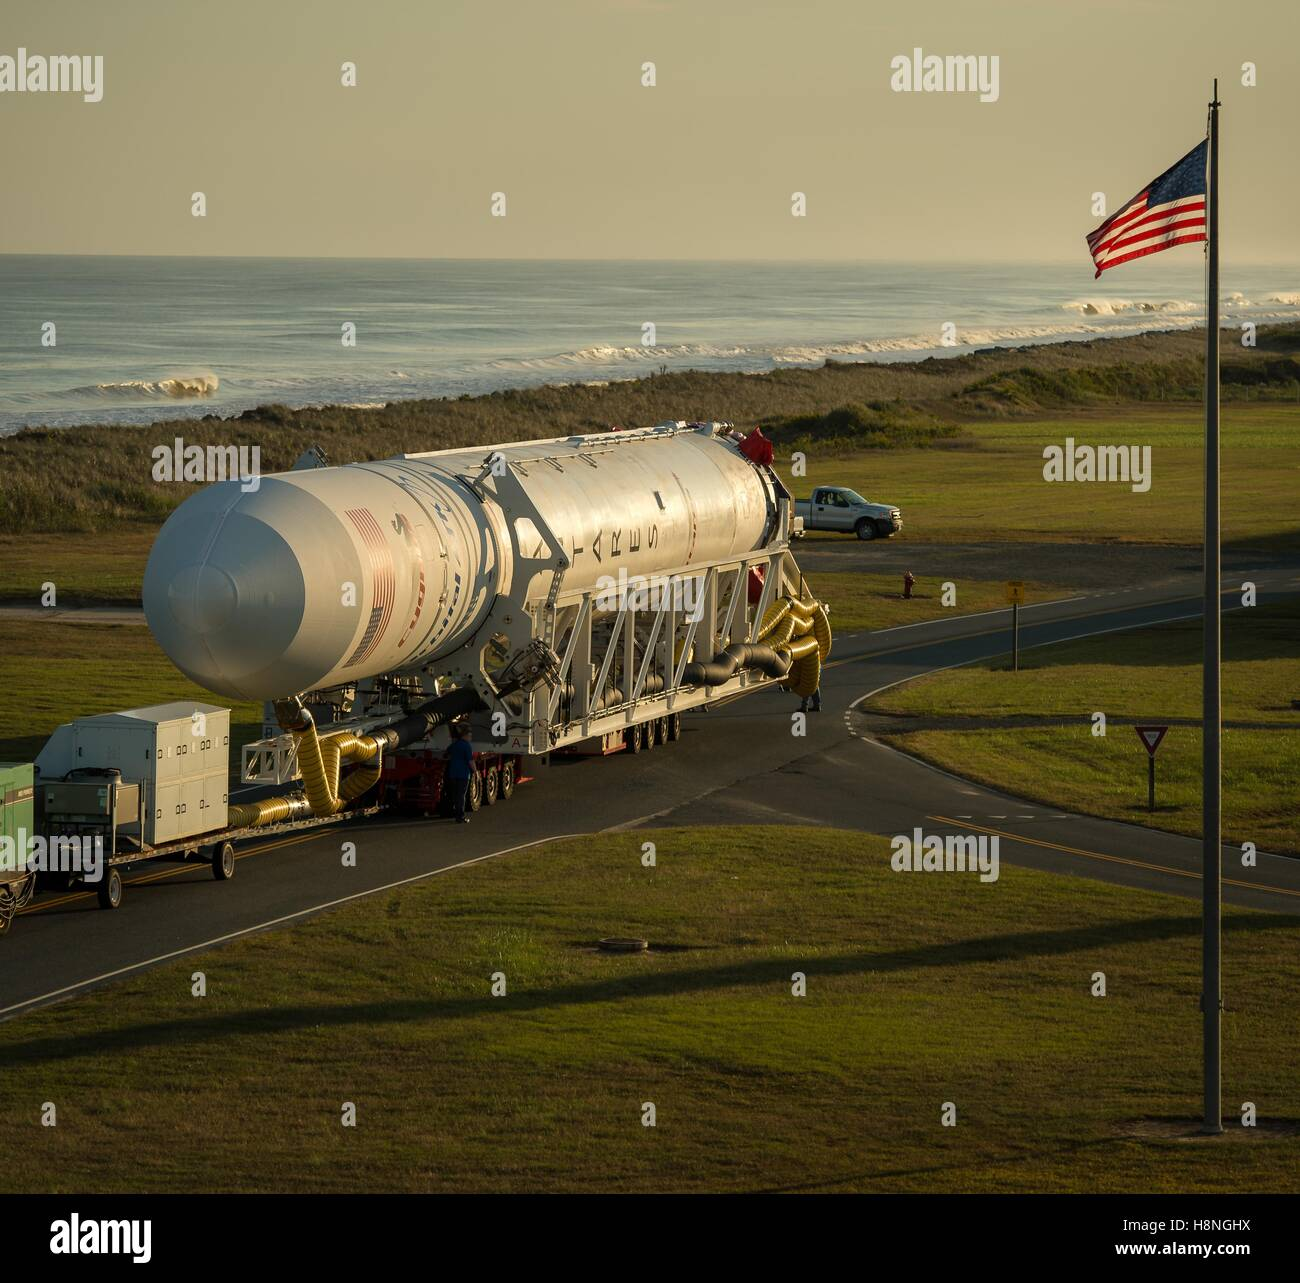 The Orbital ATK Antares rocket, with the Cygnus spacecraft onboard, is transported from the NASA Wallops Flight Stock Photo